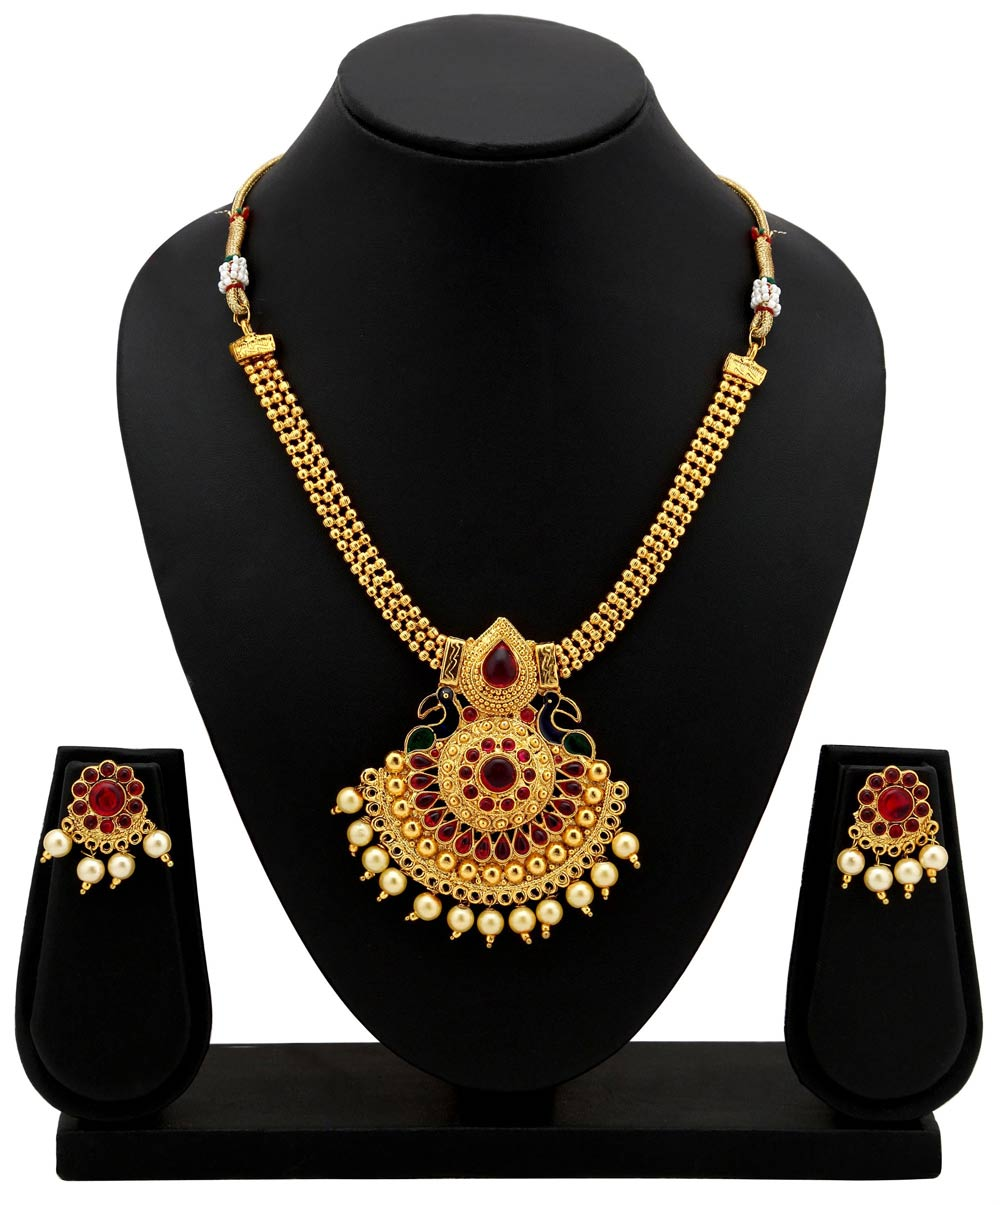 Sukkhi Traditional Gold Plated Necklace Set: Sukkhi Resplendent Gold Plated Necklace Set For Women